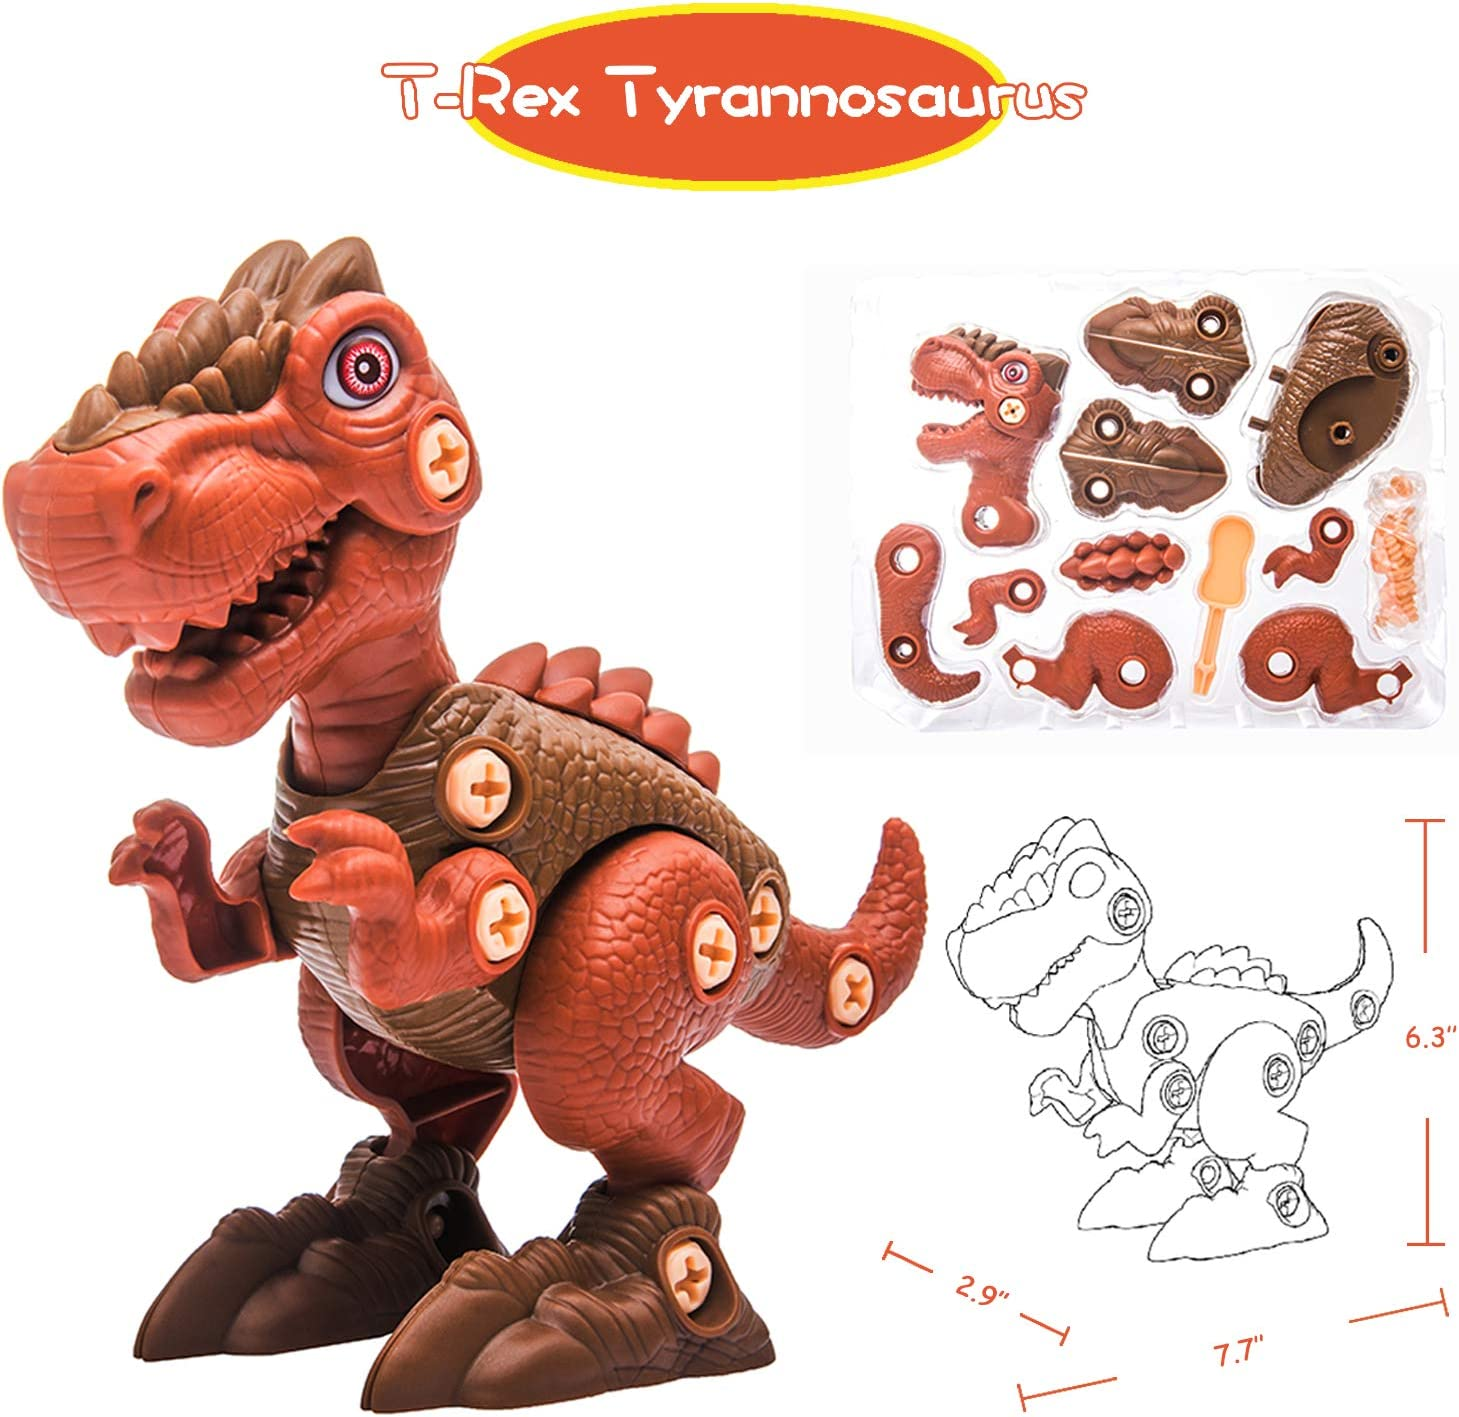 T-Rex Tyrannosaurus 4 5 year old Boys /& Grils Dinosaur Building Take Apart Toy with Electric Drill and Screwdriver Raptor Dinosaur Toys Triceratops Gift for 3 Stem Learning Educational Toy